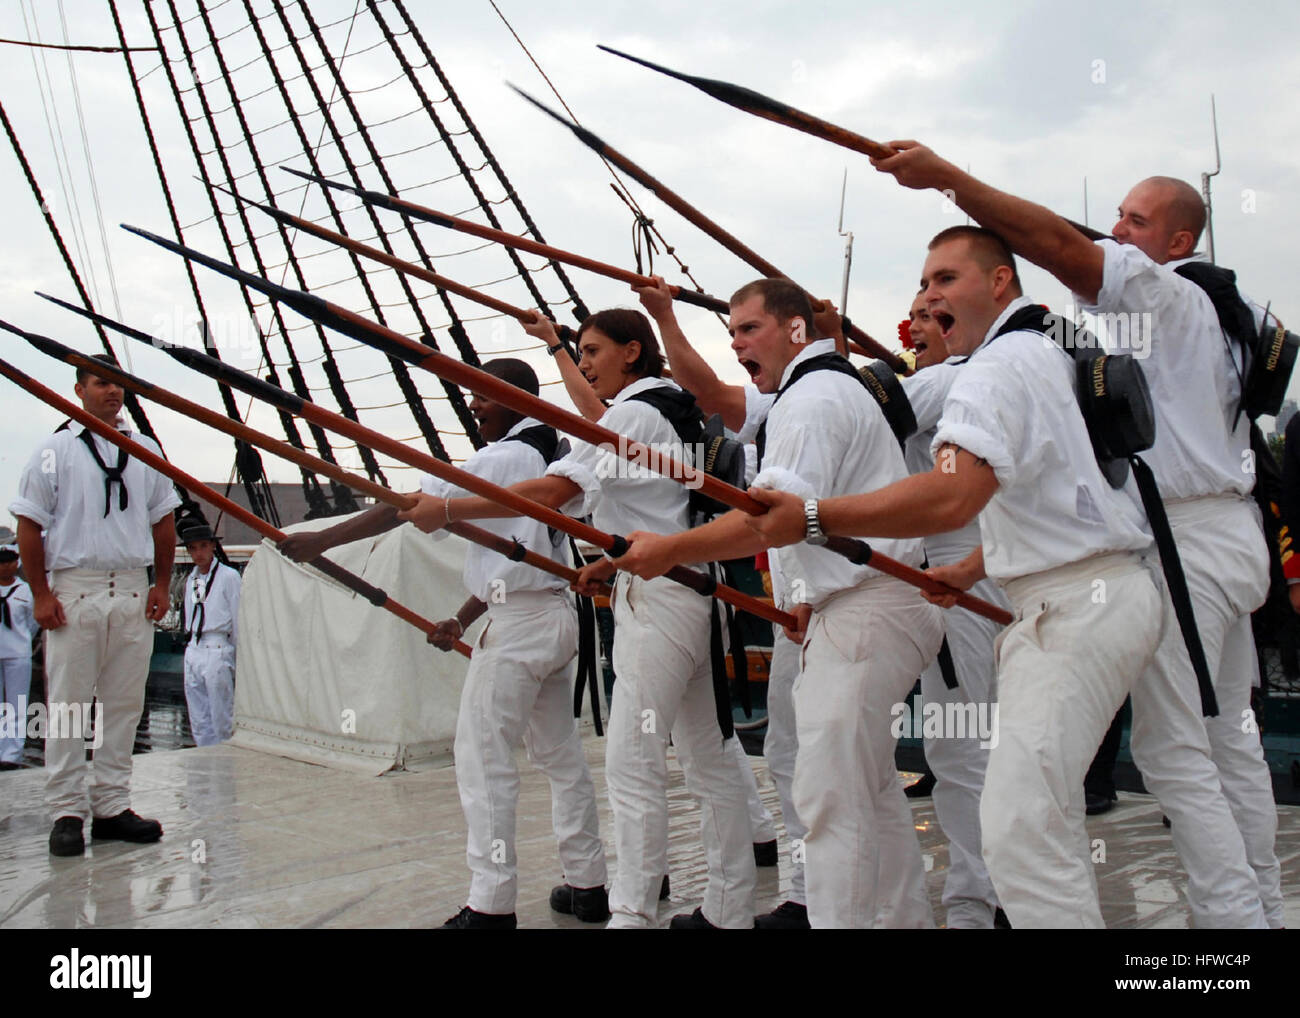 080815-N-9793B-001 CHARLESTOWN NAVY YARD, Mass. (Aug. 15, 2008) USS Constitution's boarding pike team demonstrates - Stock Image